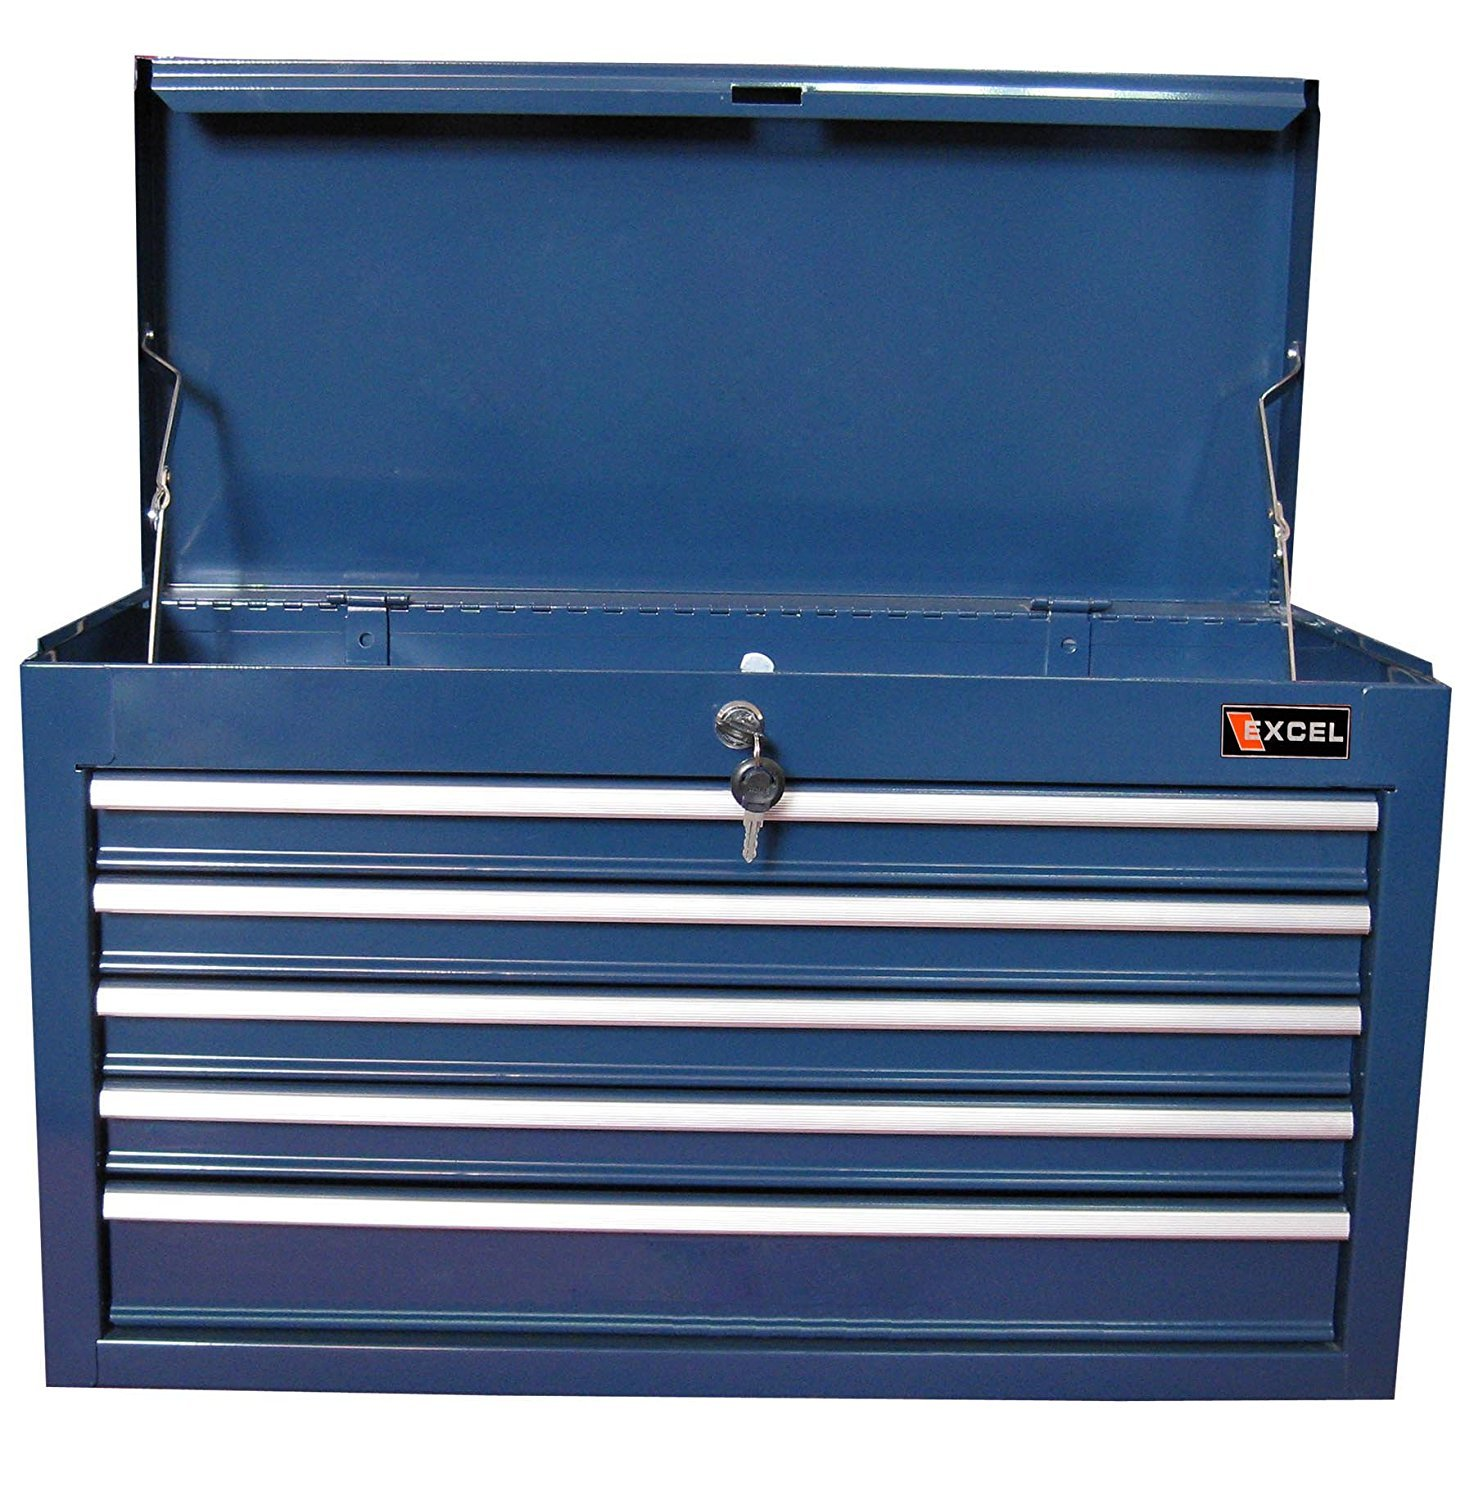 Top Seller Highest Rated 5 Drawer 26'' Steel Reinforced Professional Tool Box Organizer Blue- Ball Bearing Sliding Heavy Duty Locking Drawers With Full Length Handles- Powder Coated Corrosion Free by Above Par (Image #2)